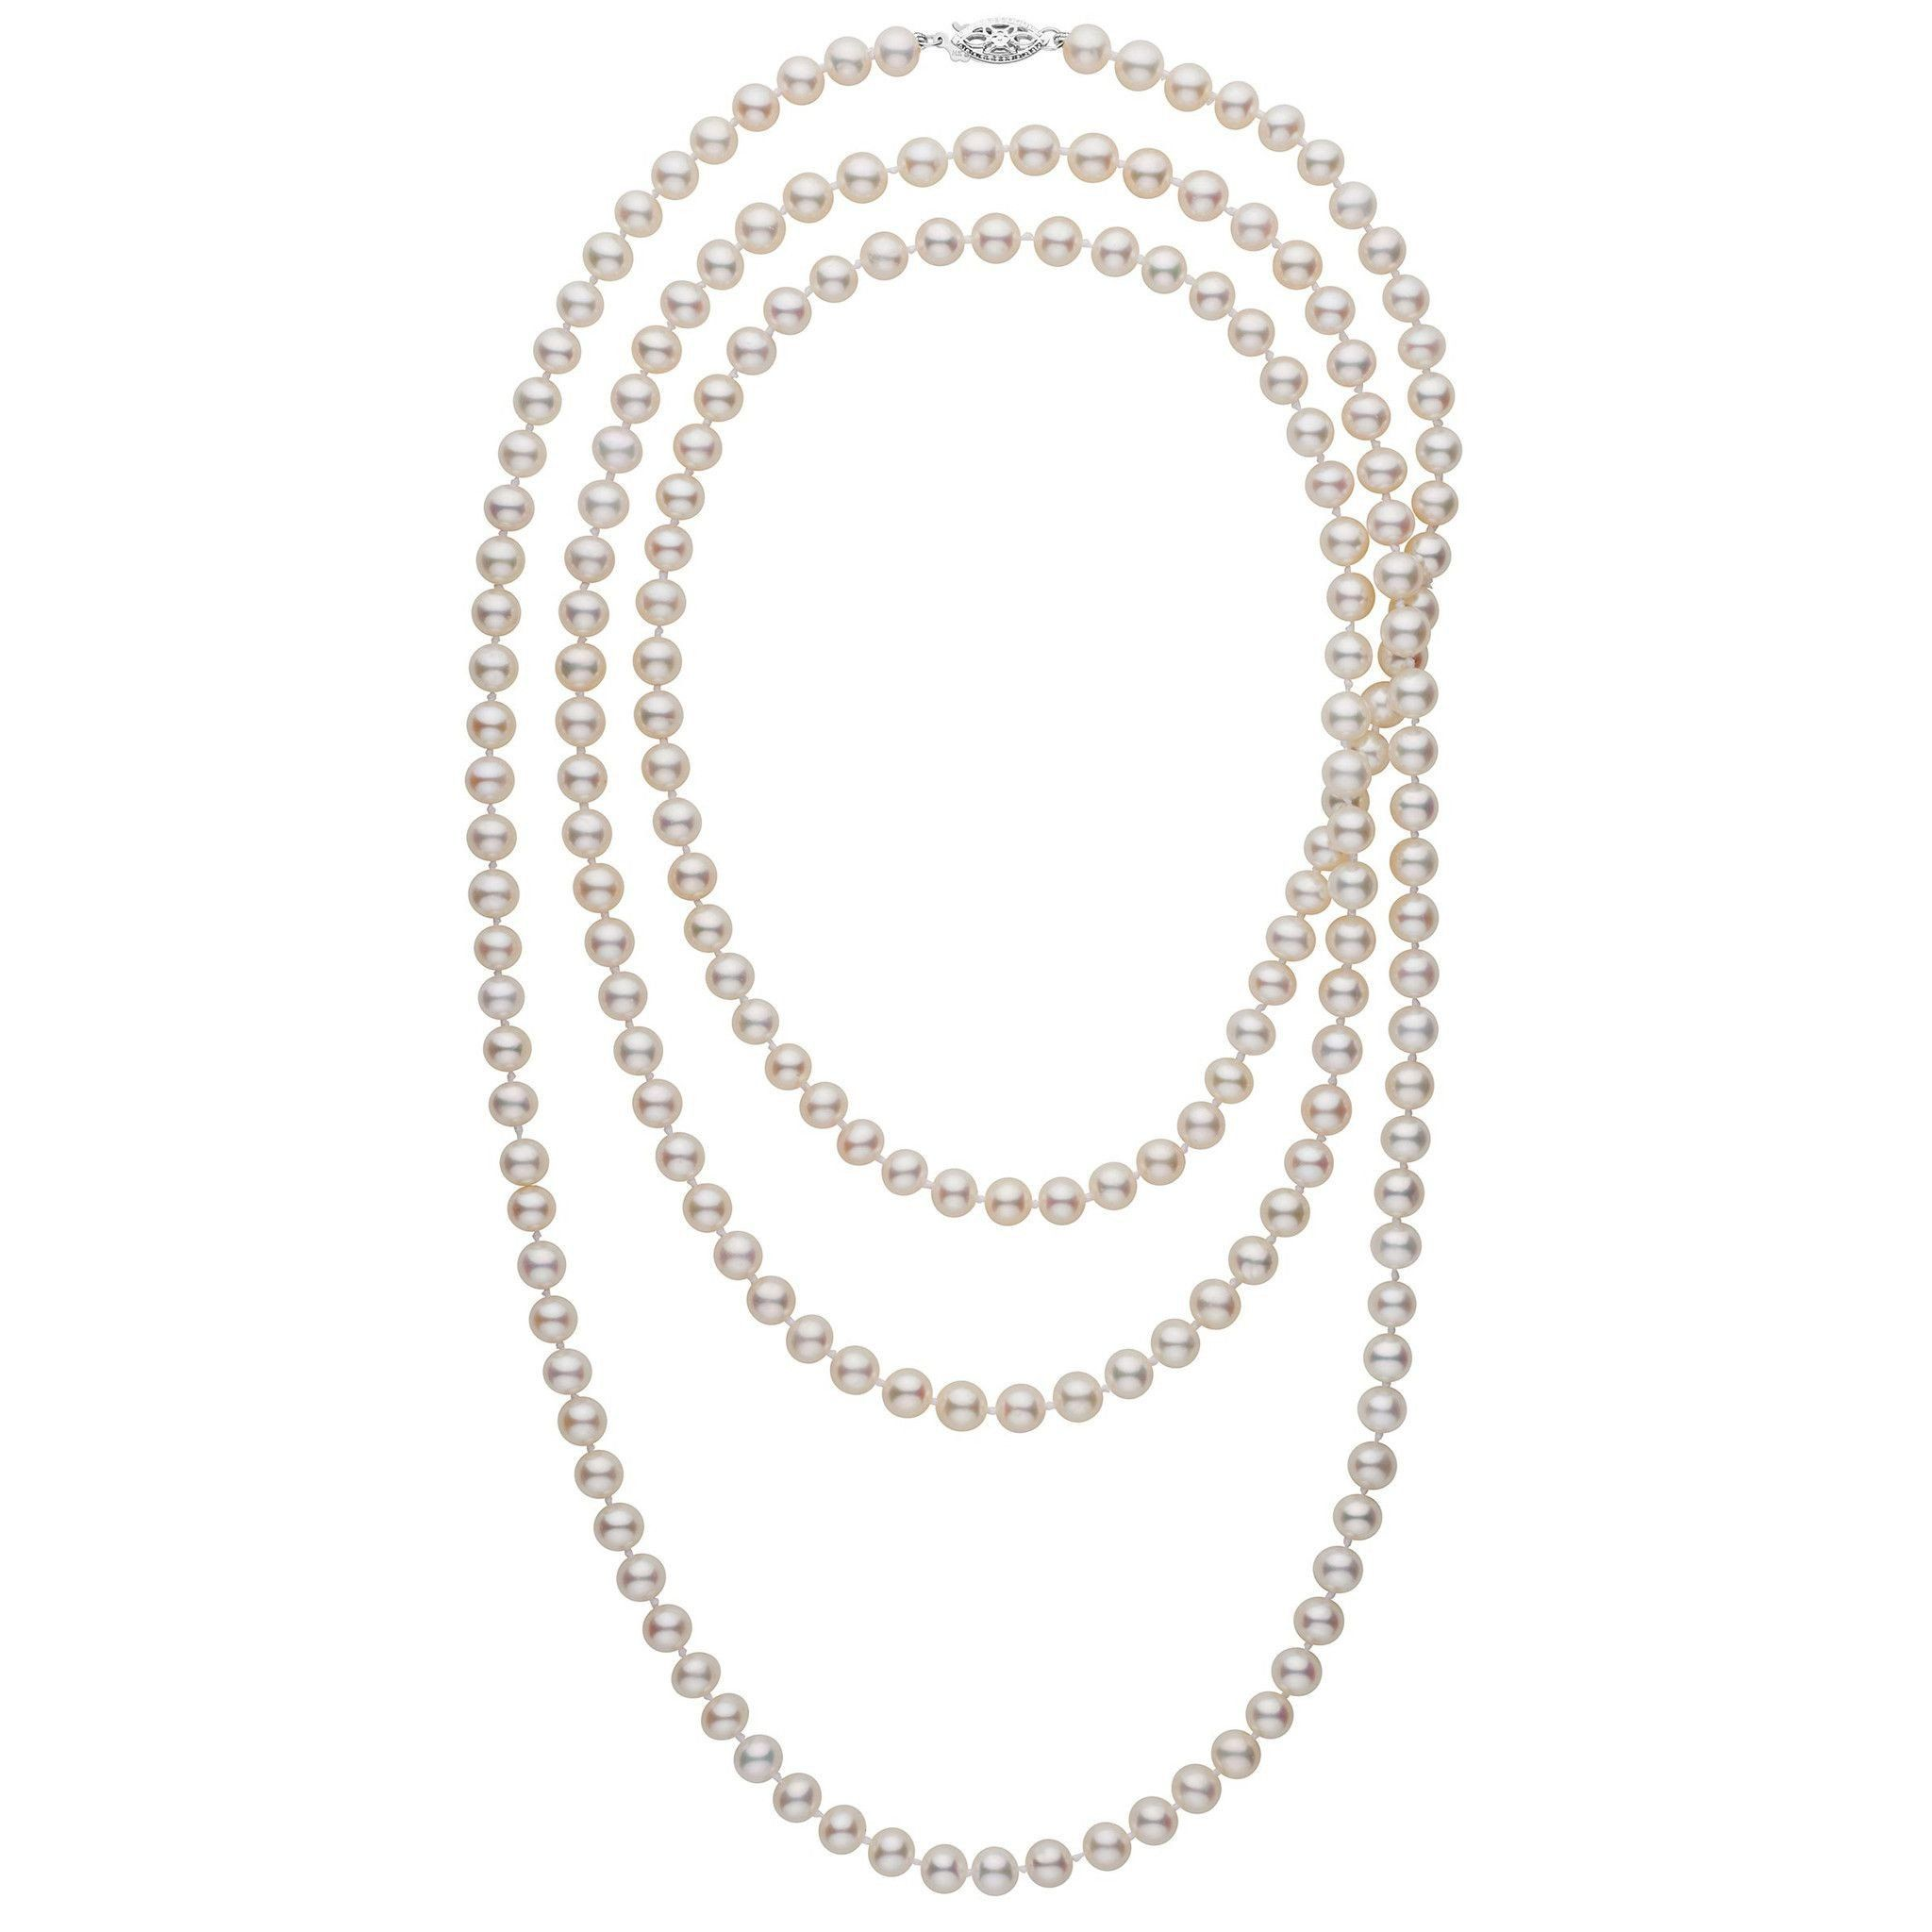 besides wear of over and other guide golden classical the many are there them one how popular pearl white while pink pearls most black hue nacre ultimate due blog to only with a ca necklace their colors